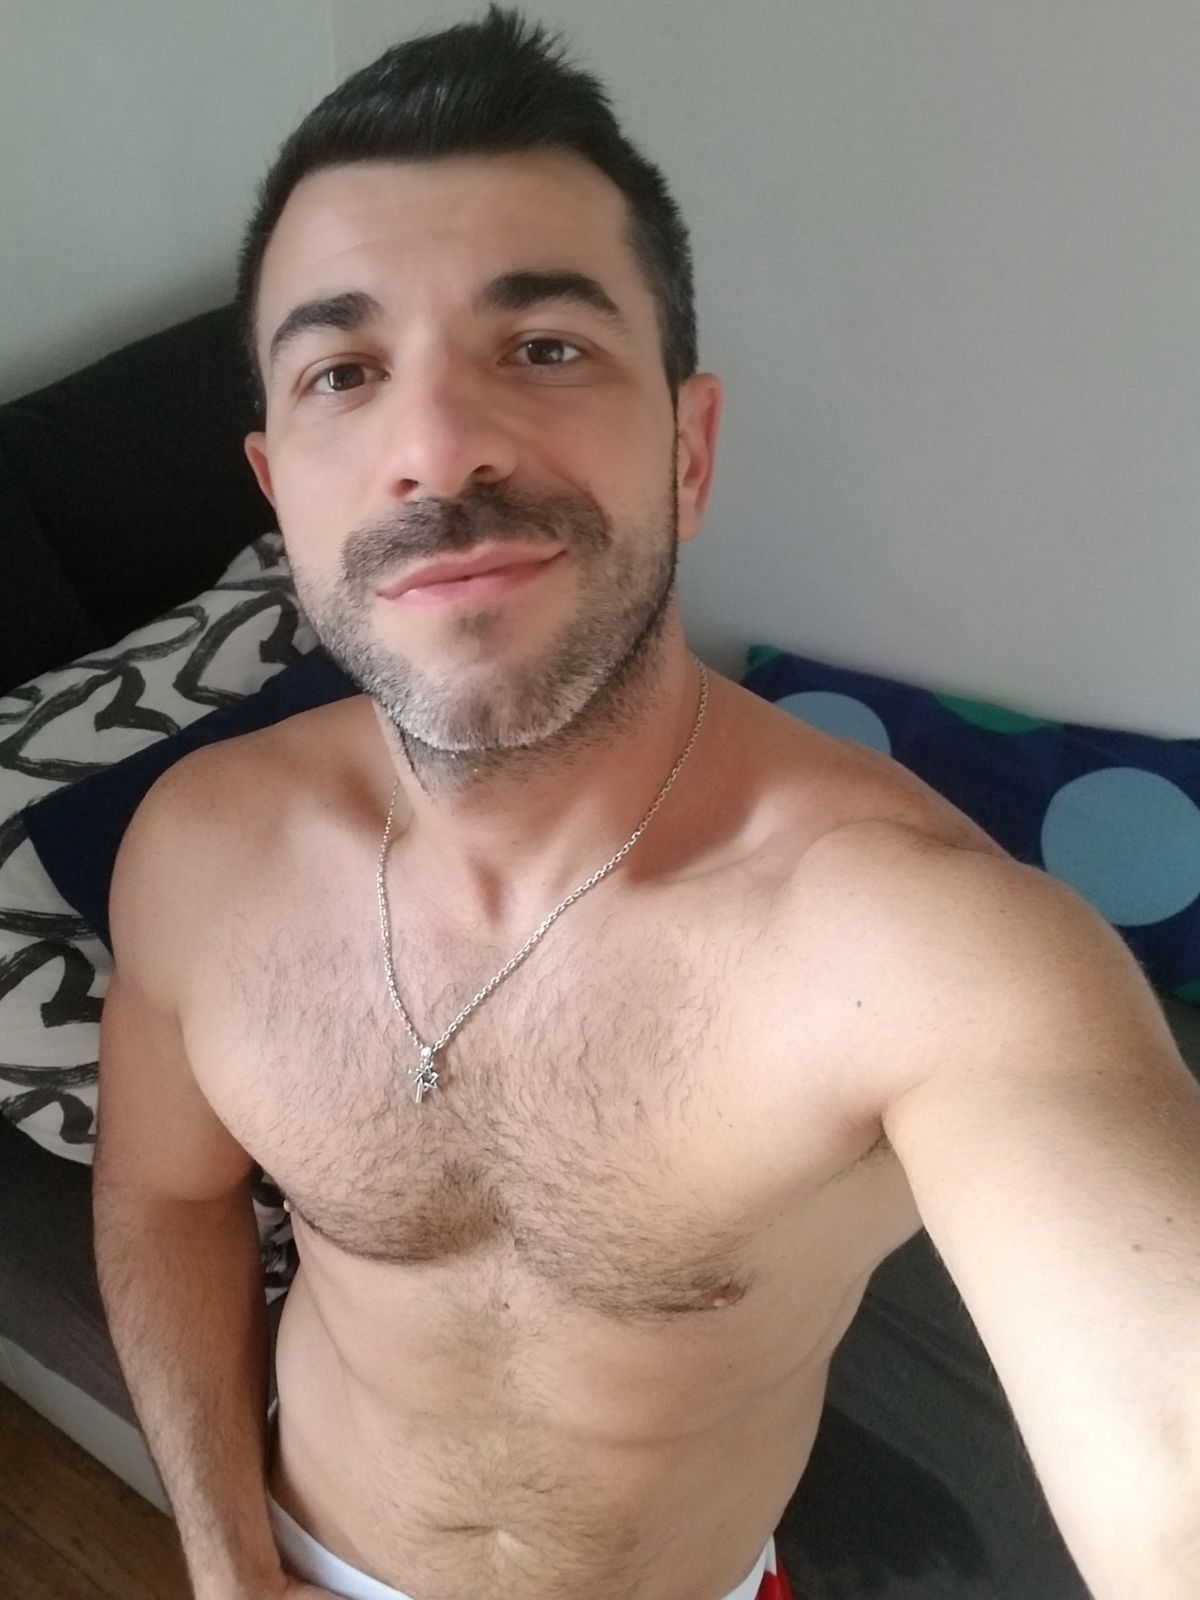 Minipousse86 photos and videos onlyfans leaked